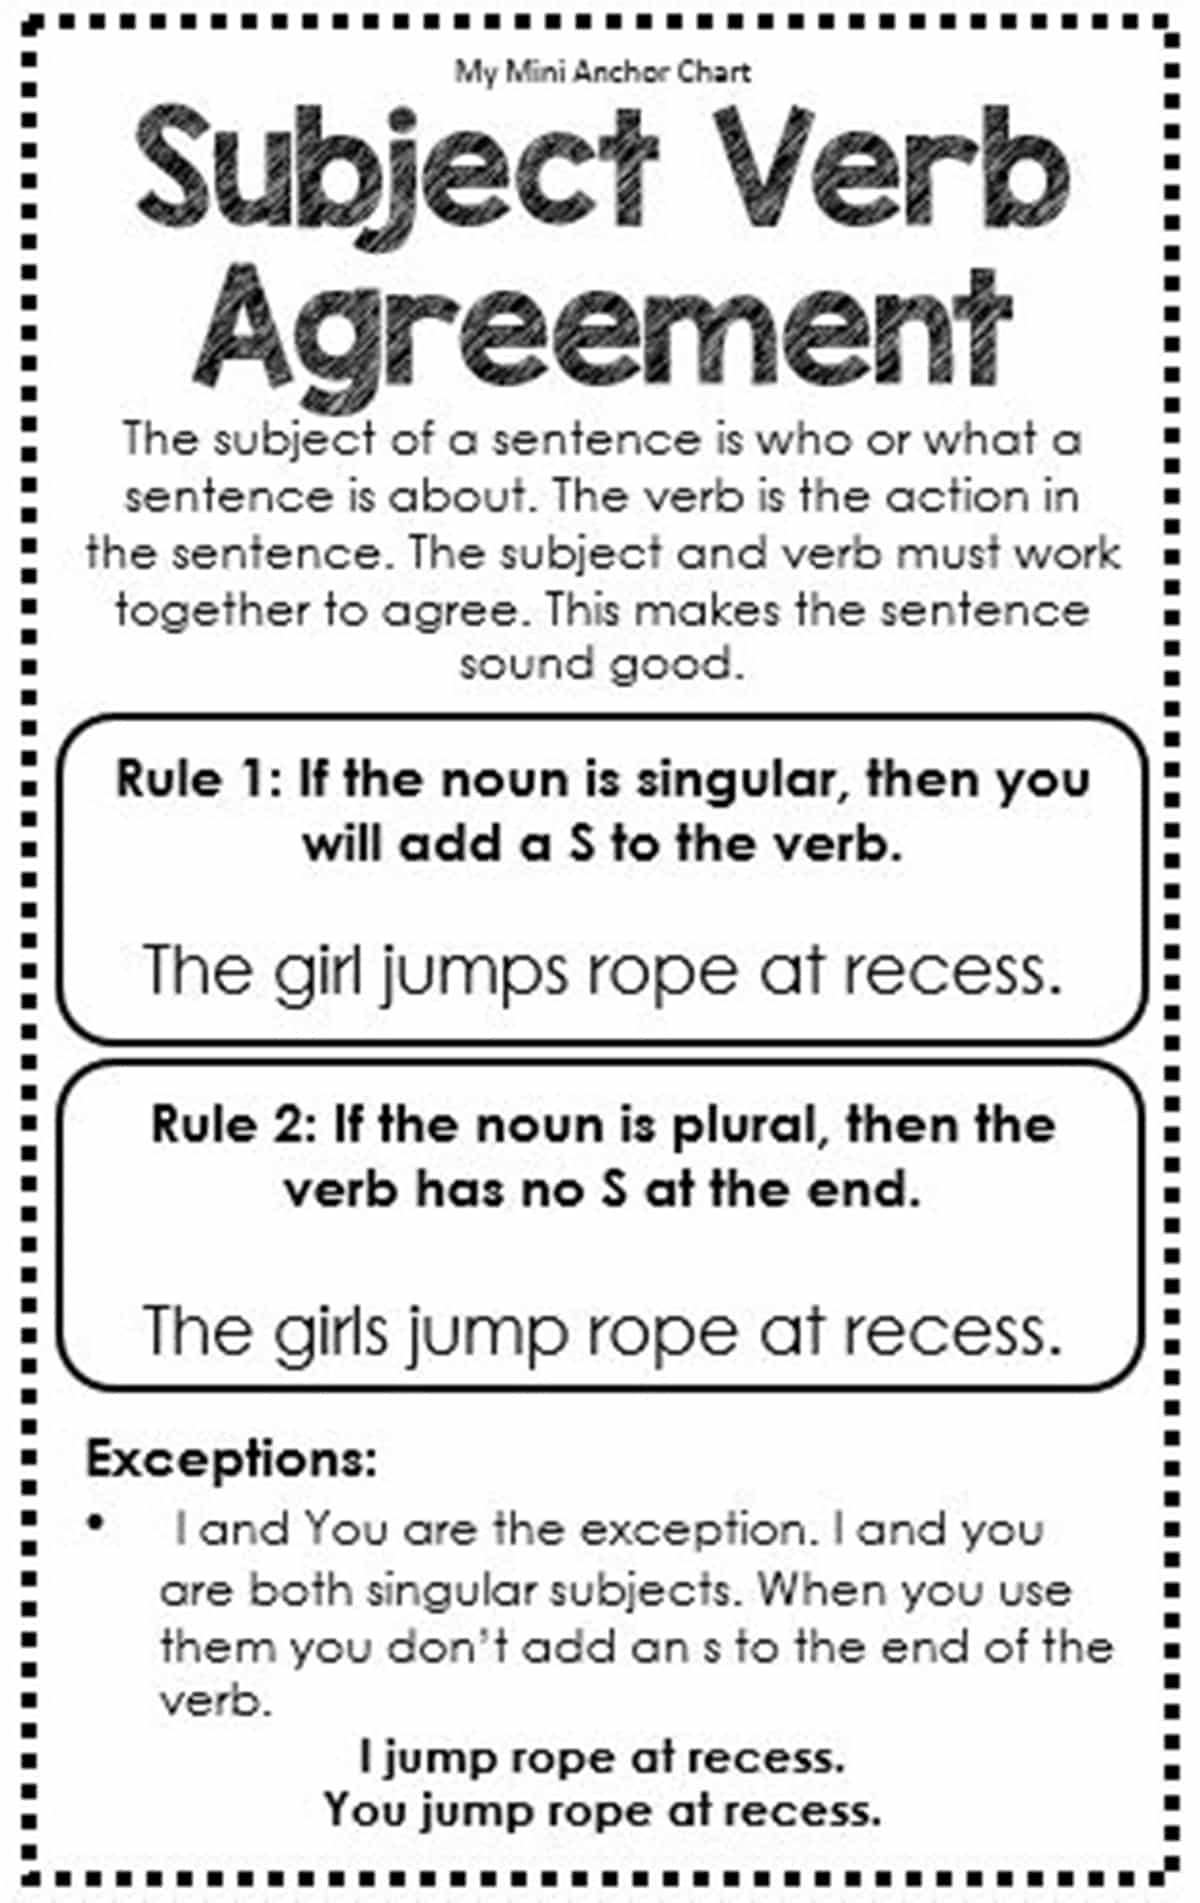 worksheet Subject And Verb Agreement Worksheets subject verb agreement exercises with answers for class 7 the one and is are both singular mentally omit prepositional